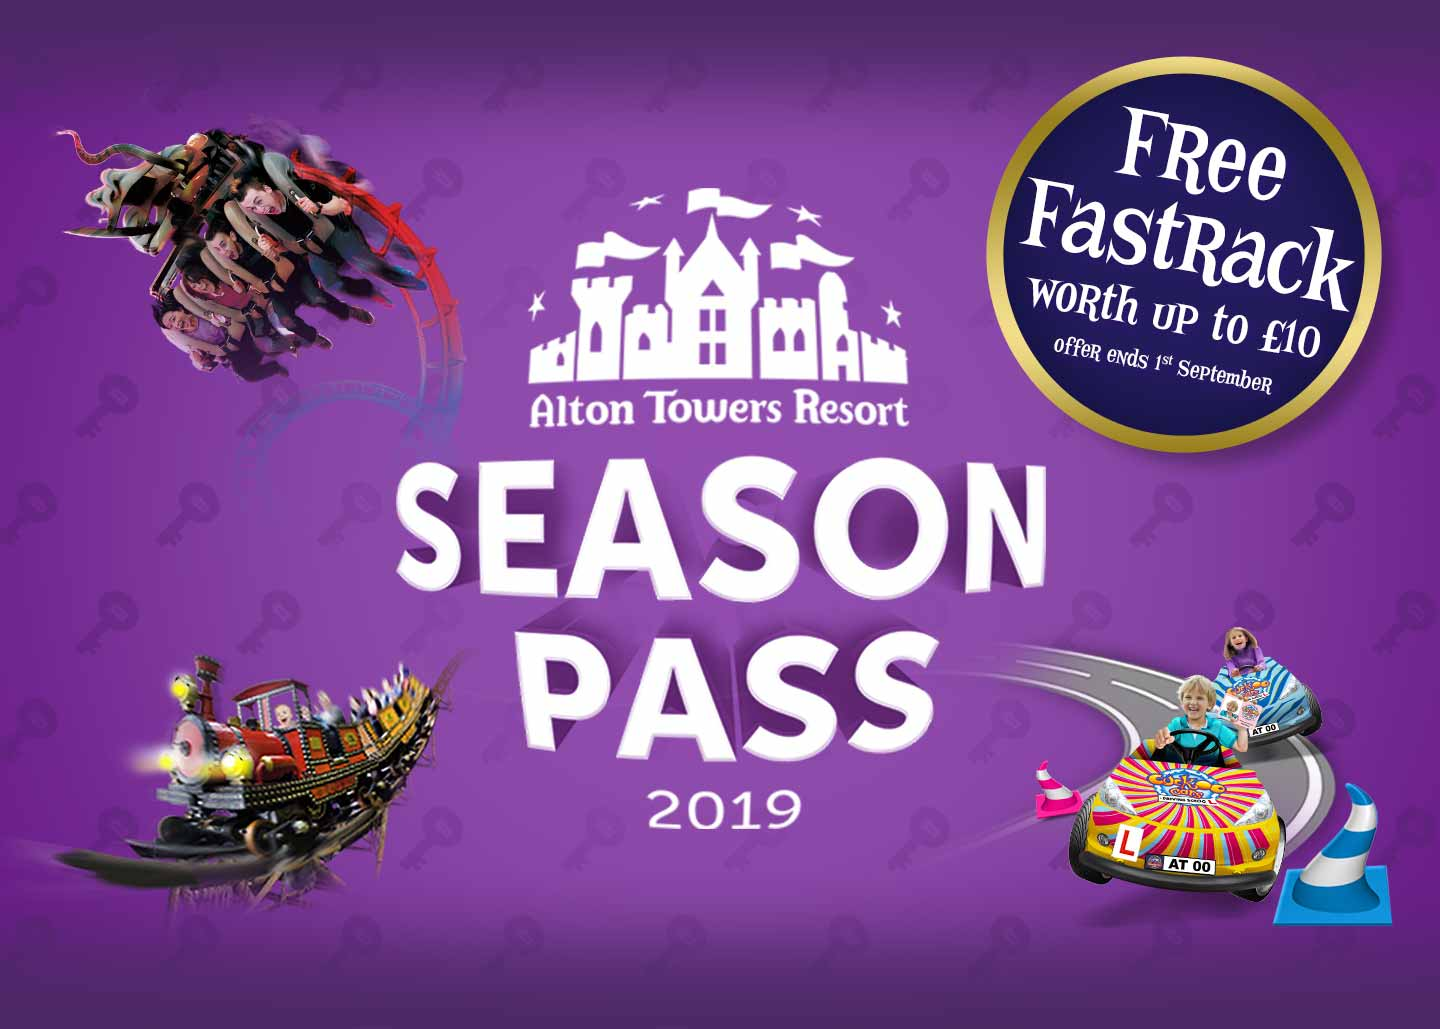 Standard Season Pass plus FREE Fastrack